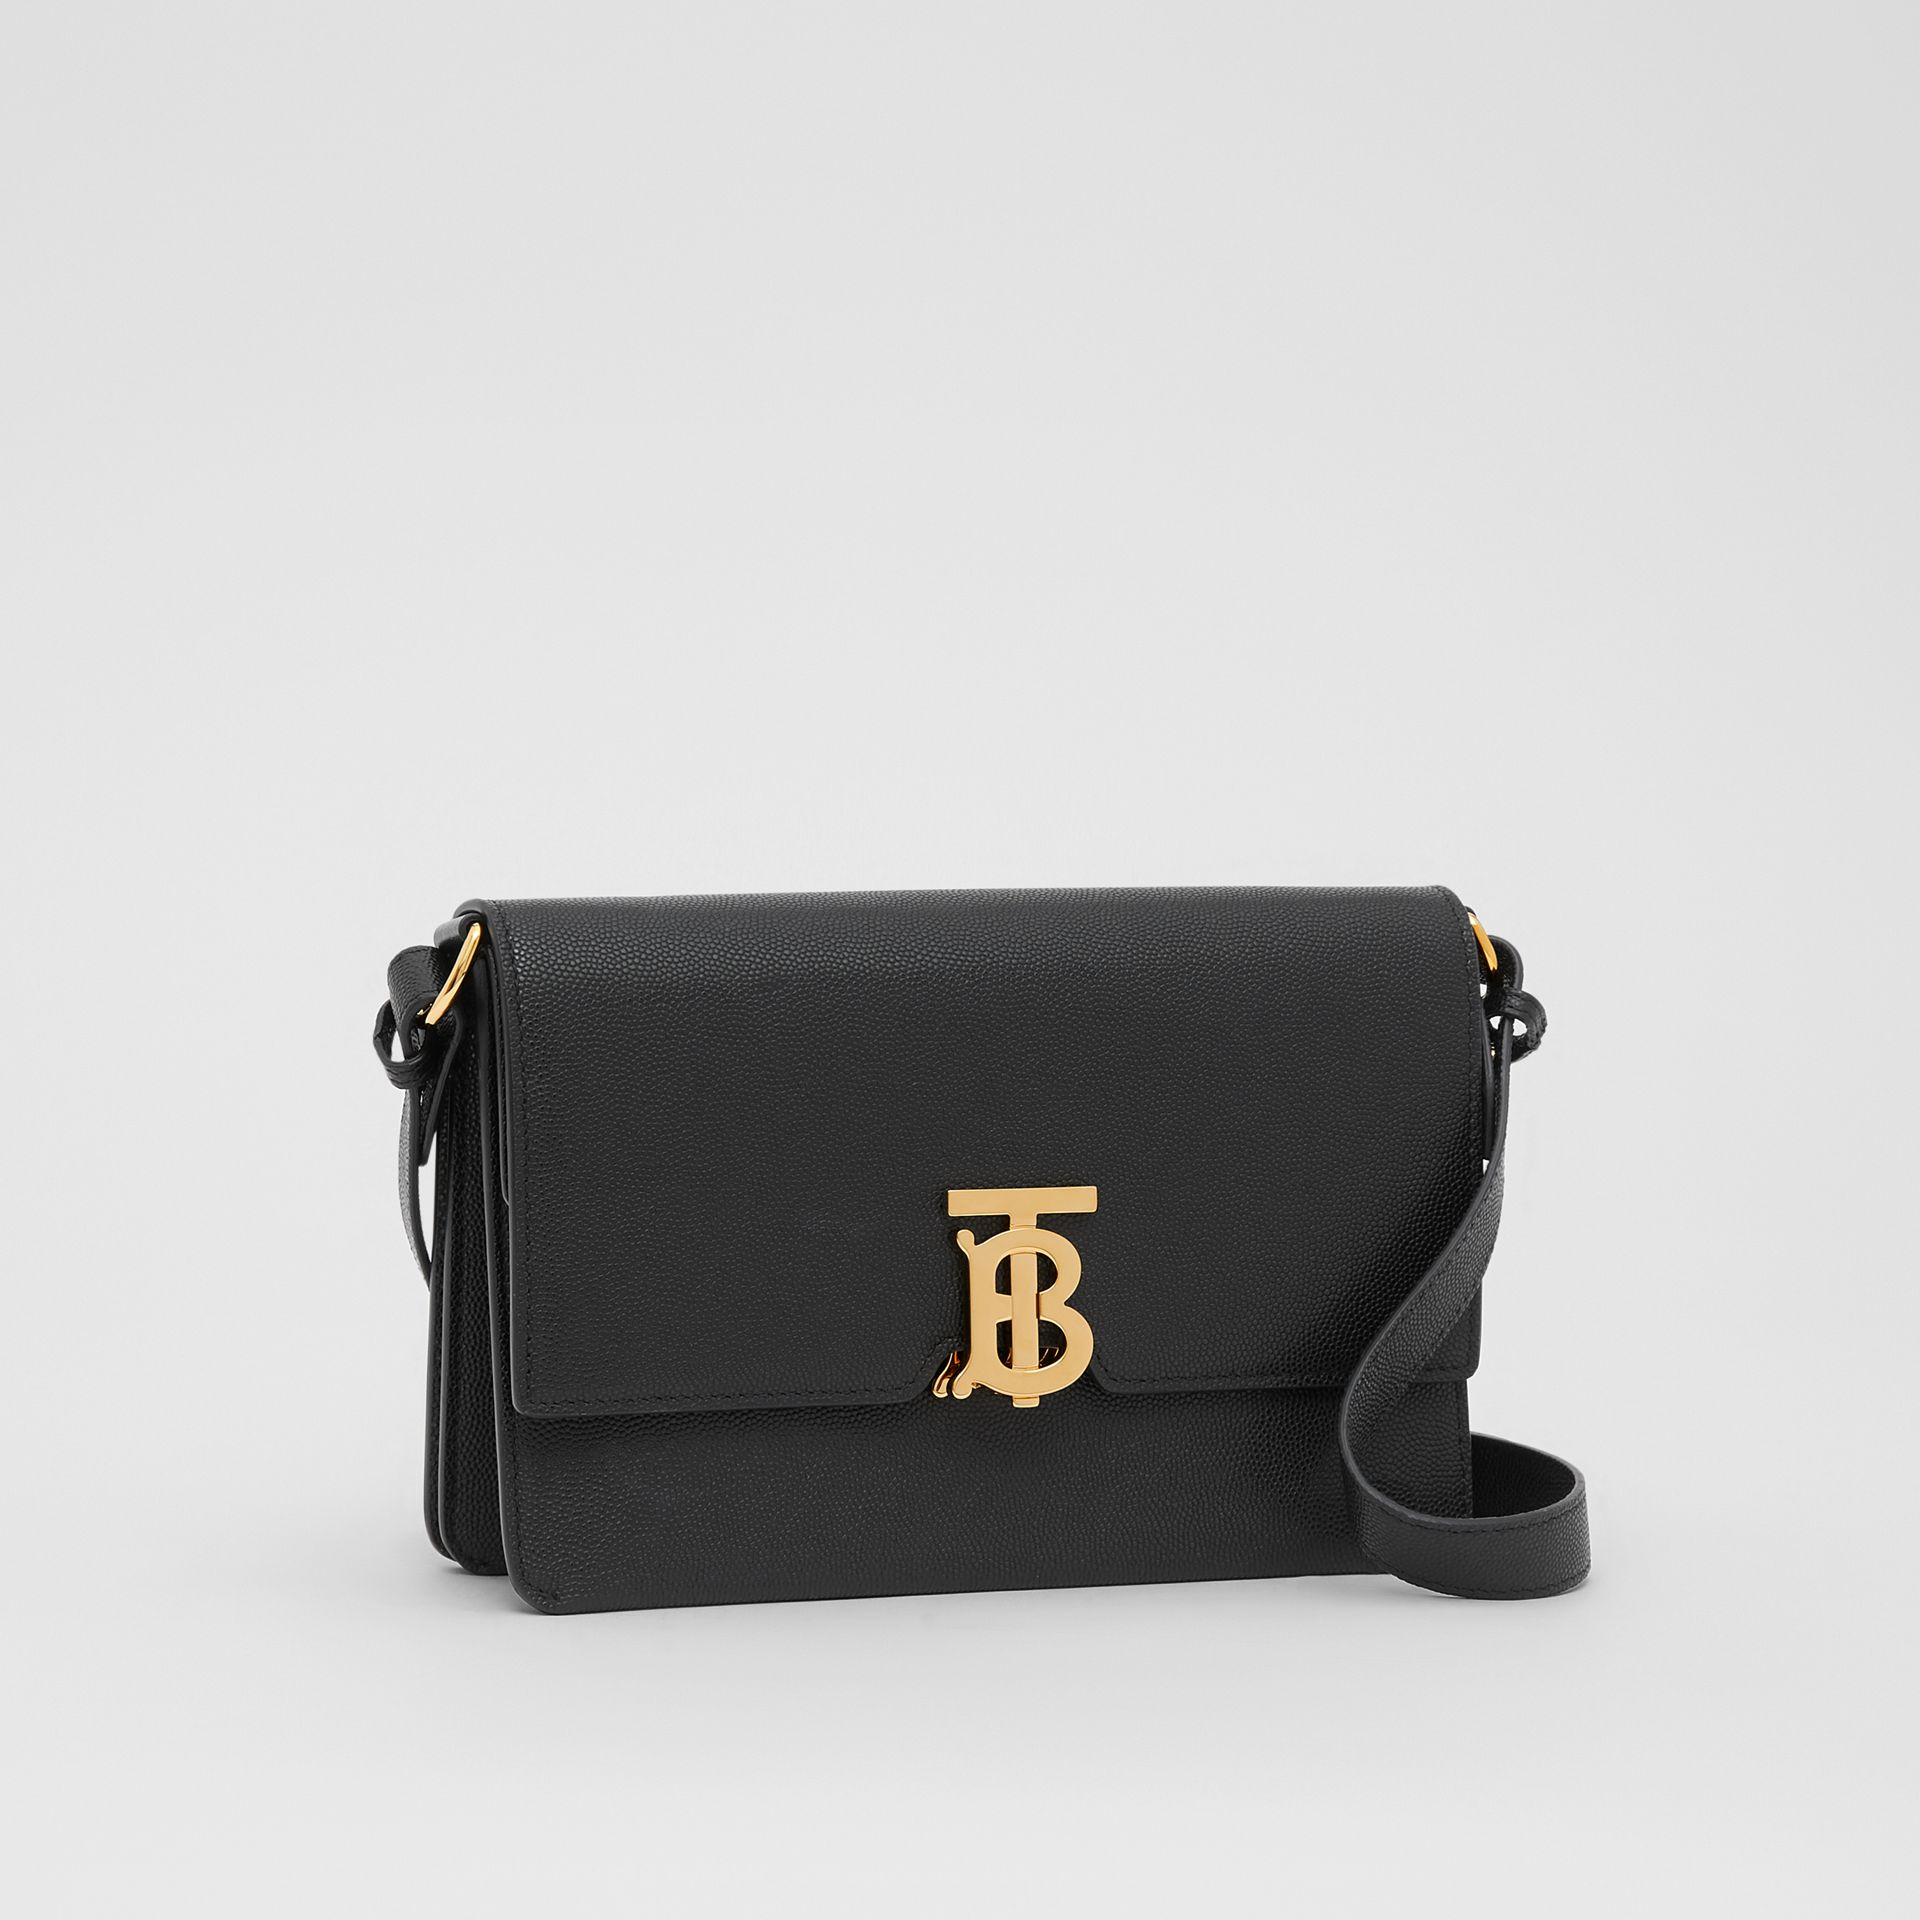 Small Monogram Motif Leather Crossbody Bag in Black - Women | Burberry - gallery image 6